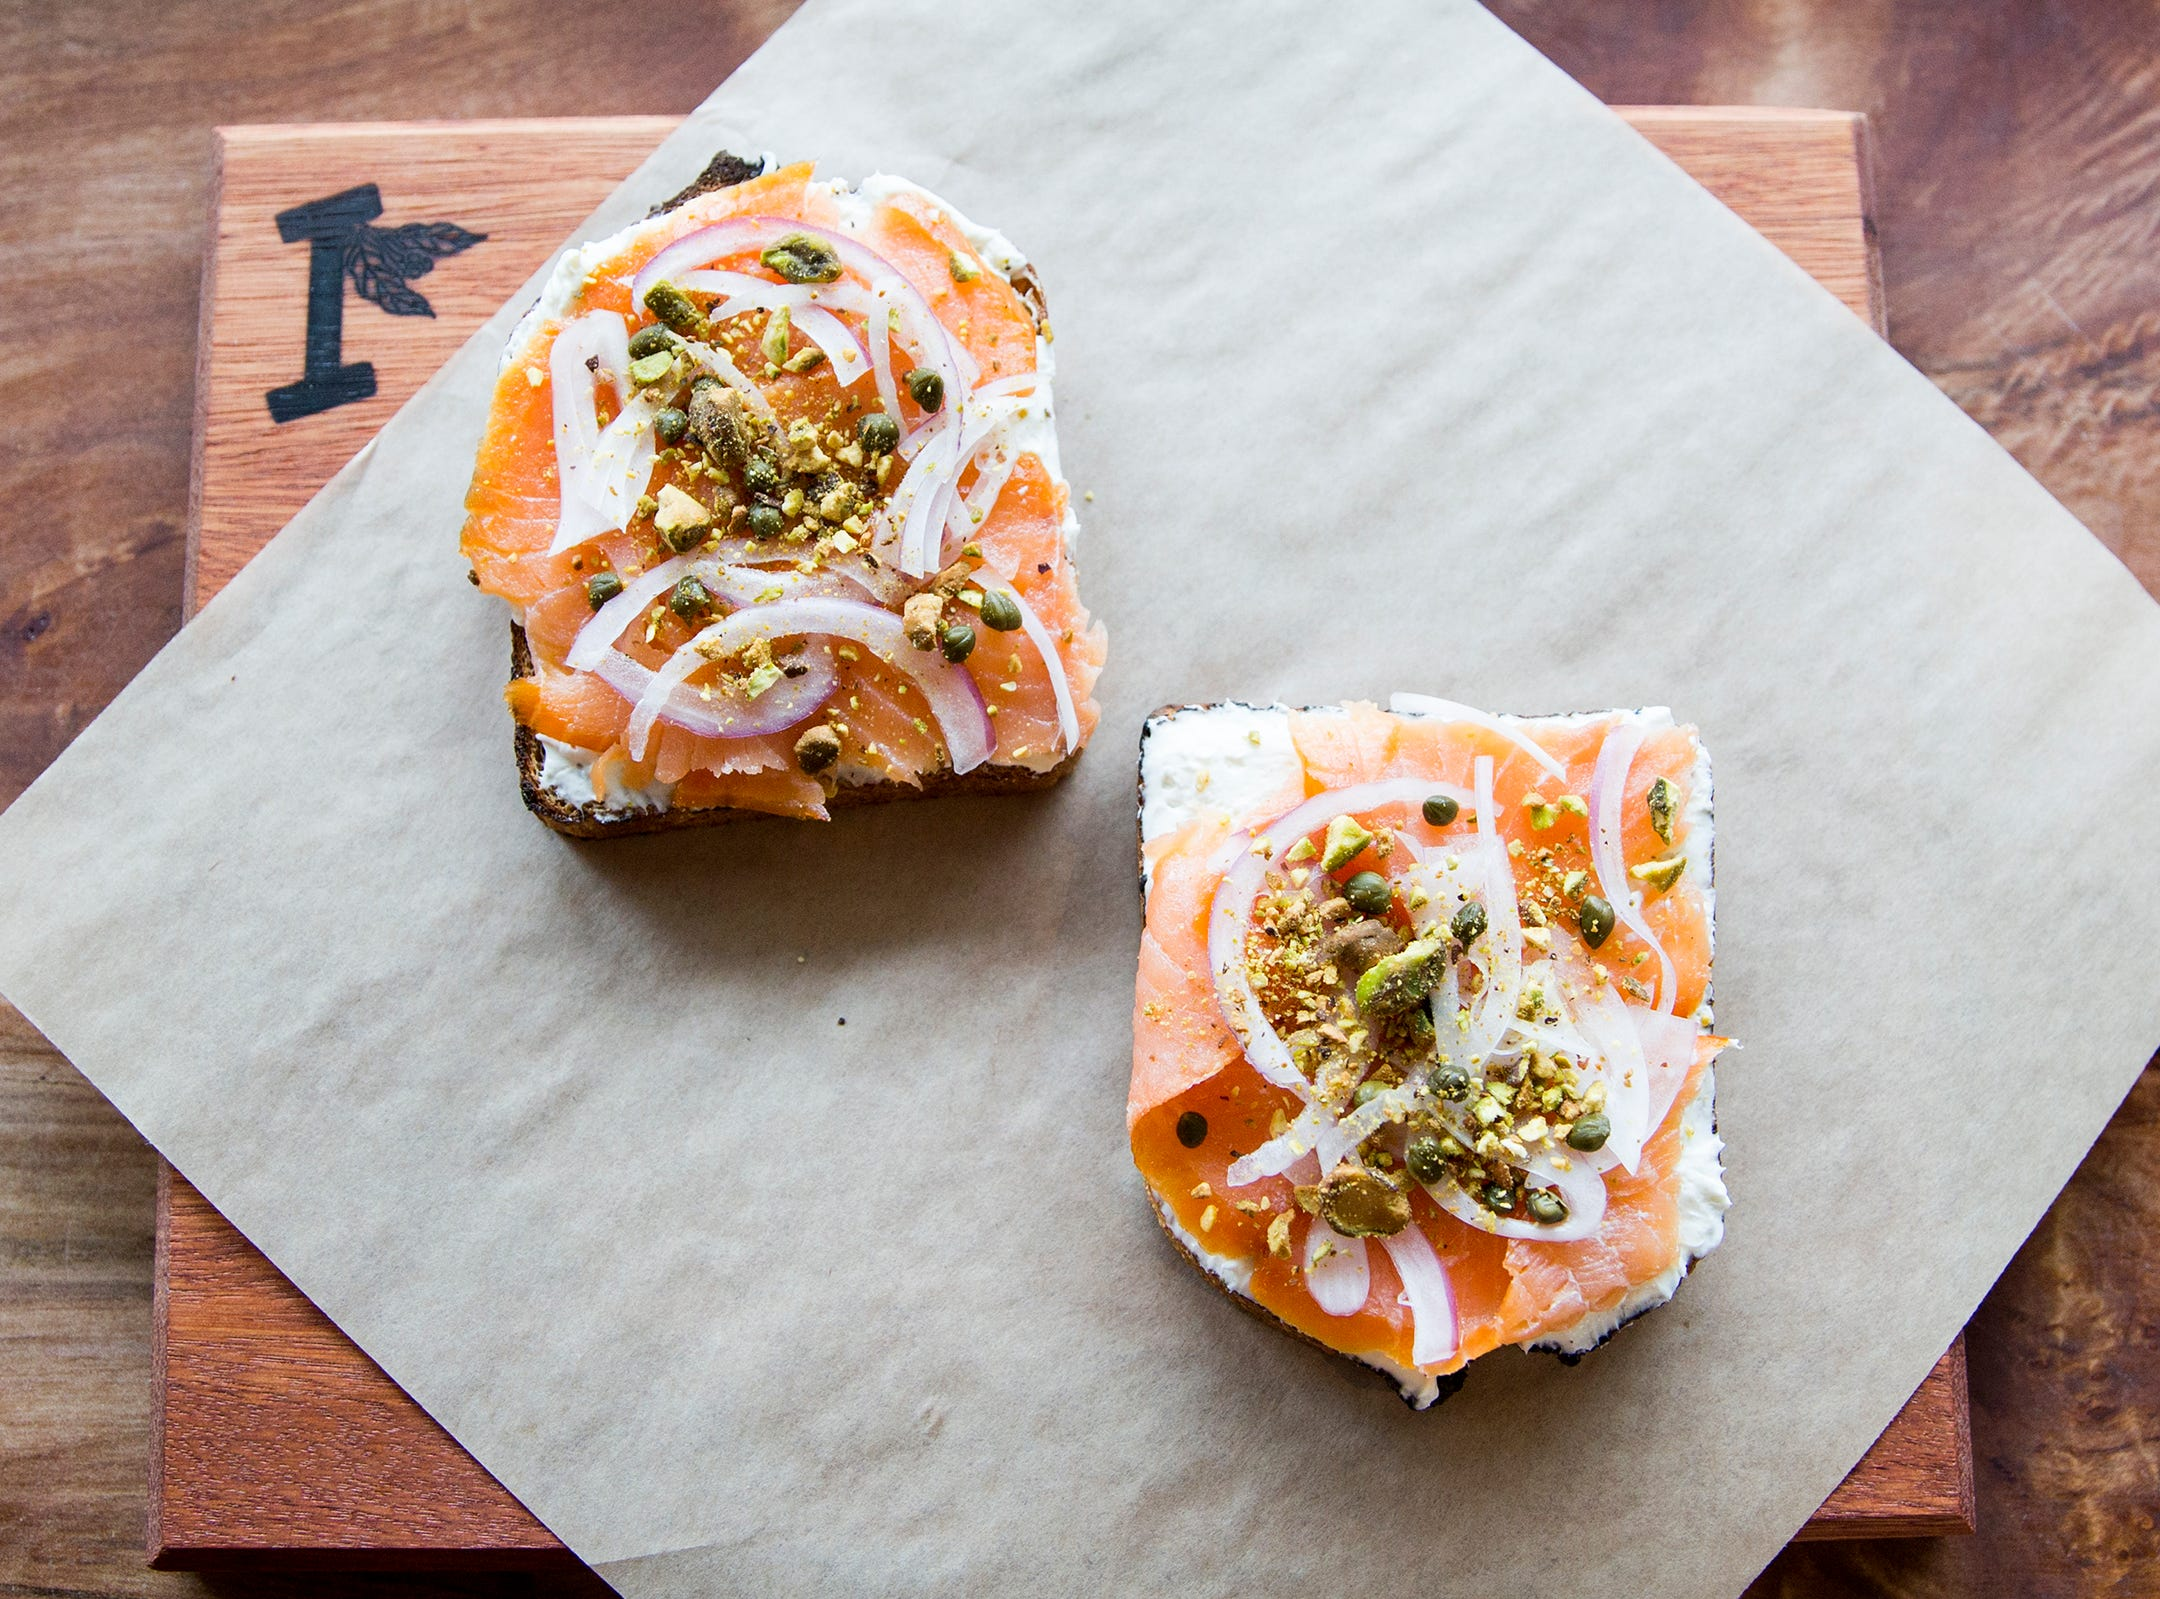 Toast with cream cheese, lox, capers, red onion and pistachios at Isaac's Downtown in Salem on Thursday, Jan. 3, 2019. The menu item is called Brooklyn.